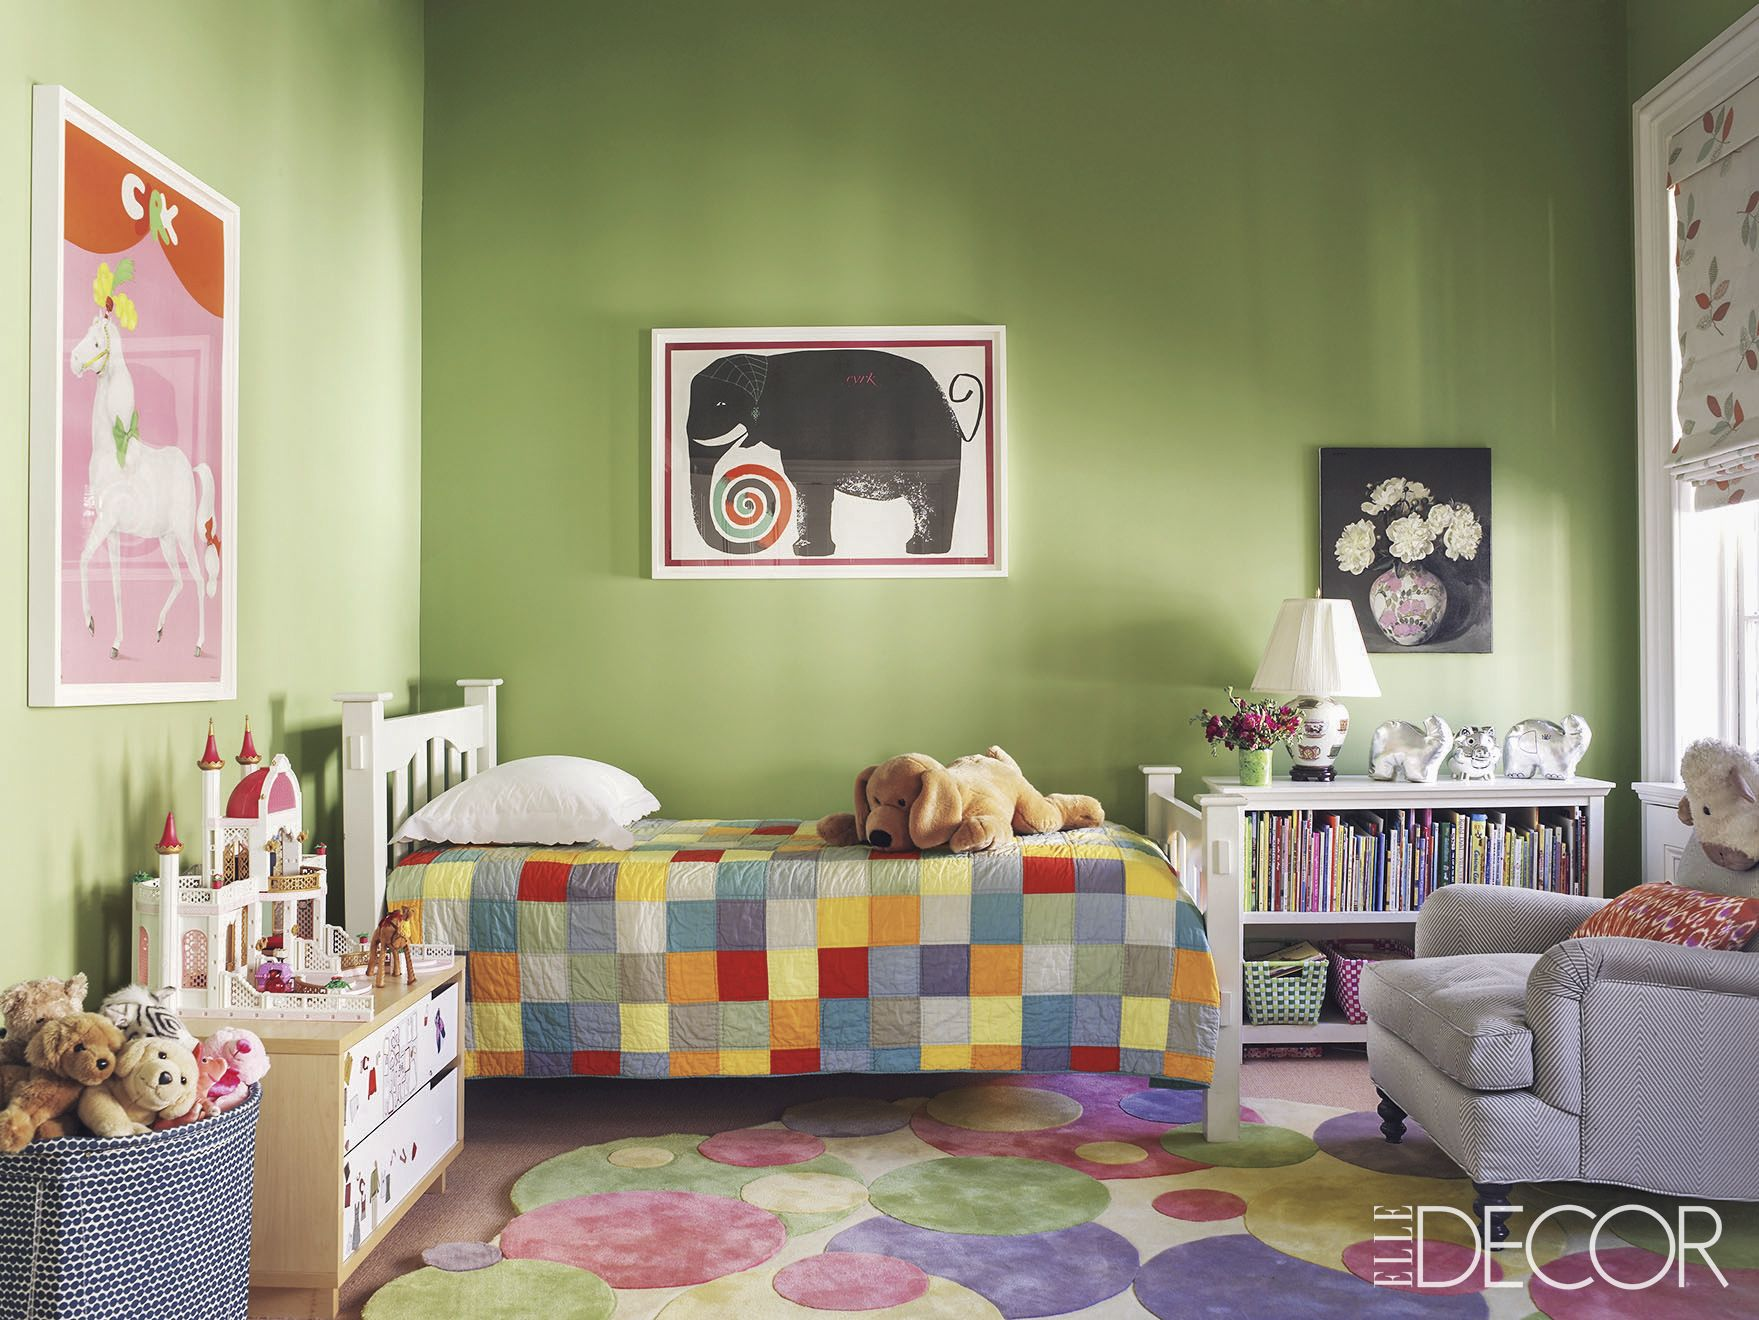 Incroyable Kids Room Decorating Ideas